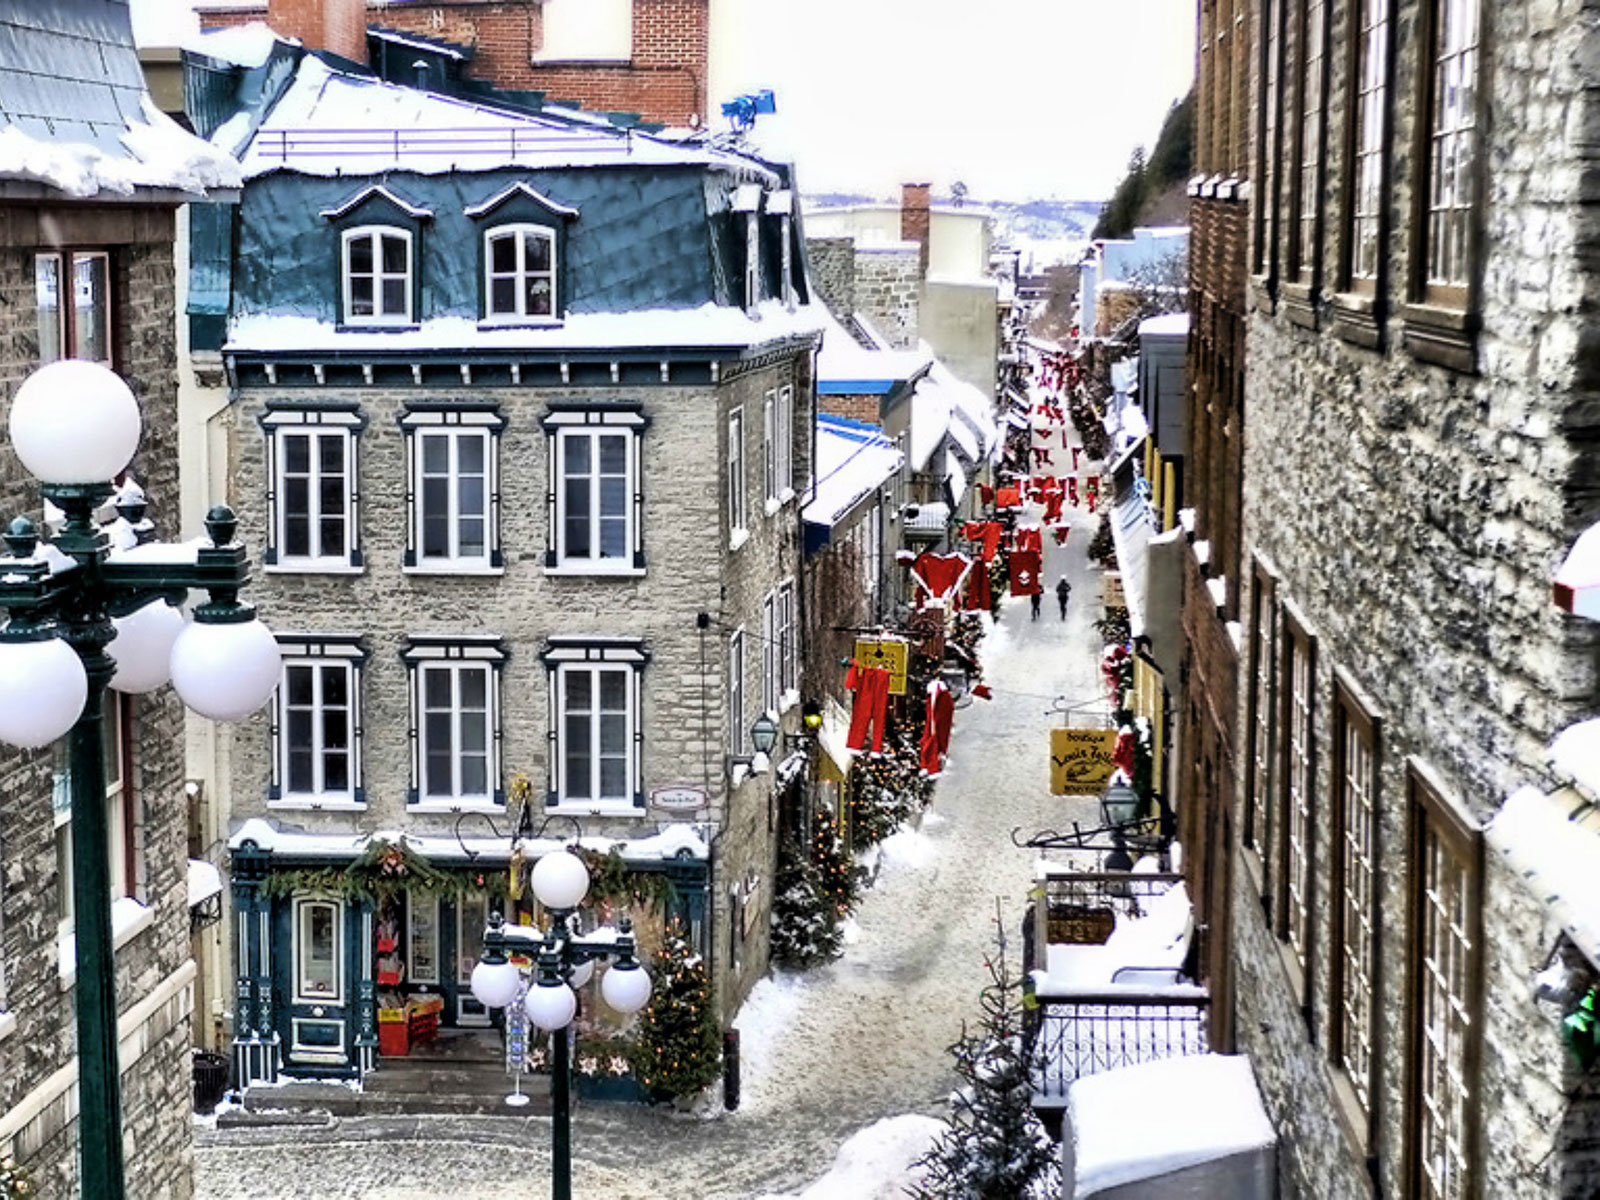 Carnaval in Quebec City: Where to Eat, Drink, and Stay